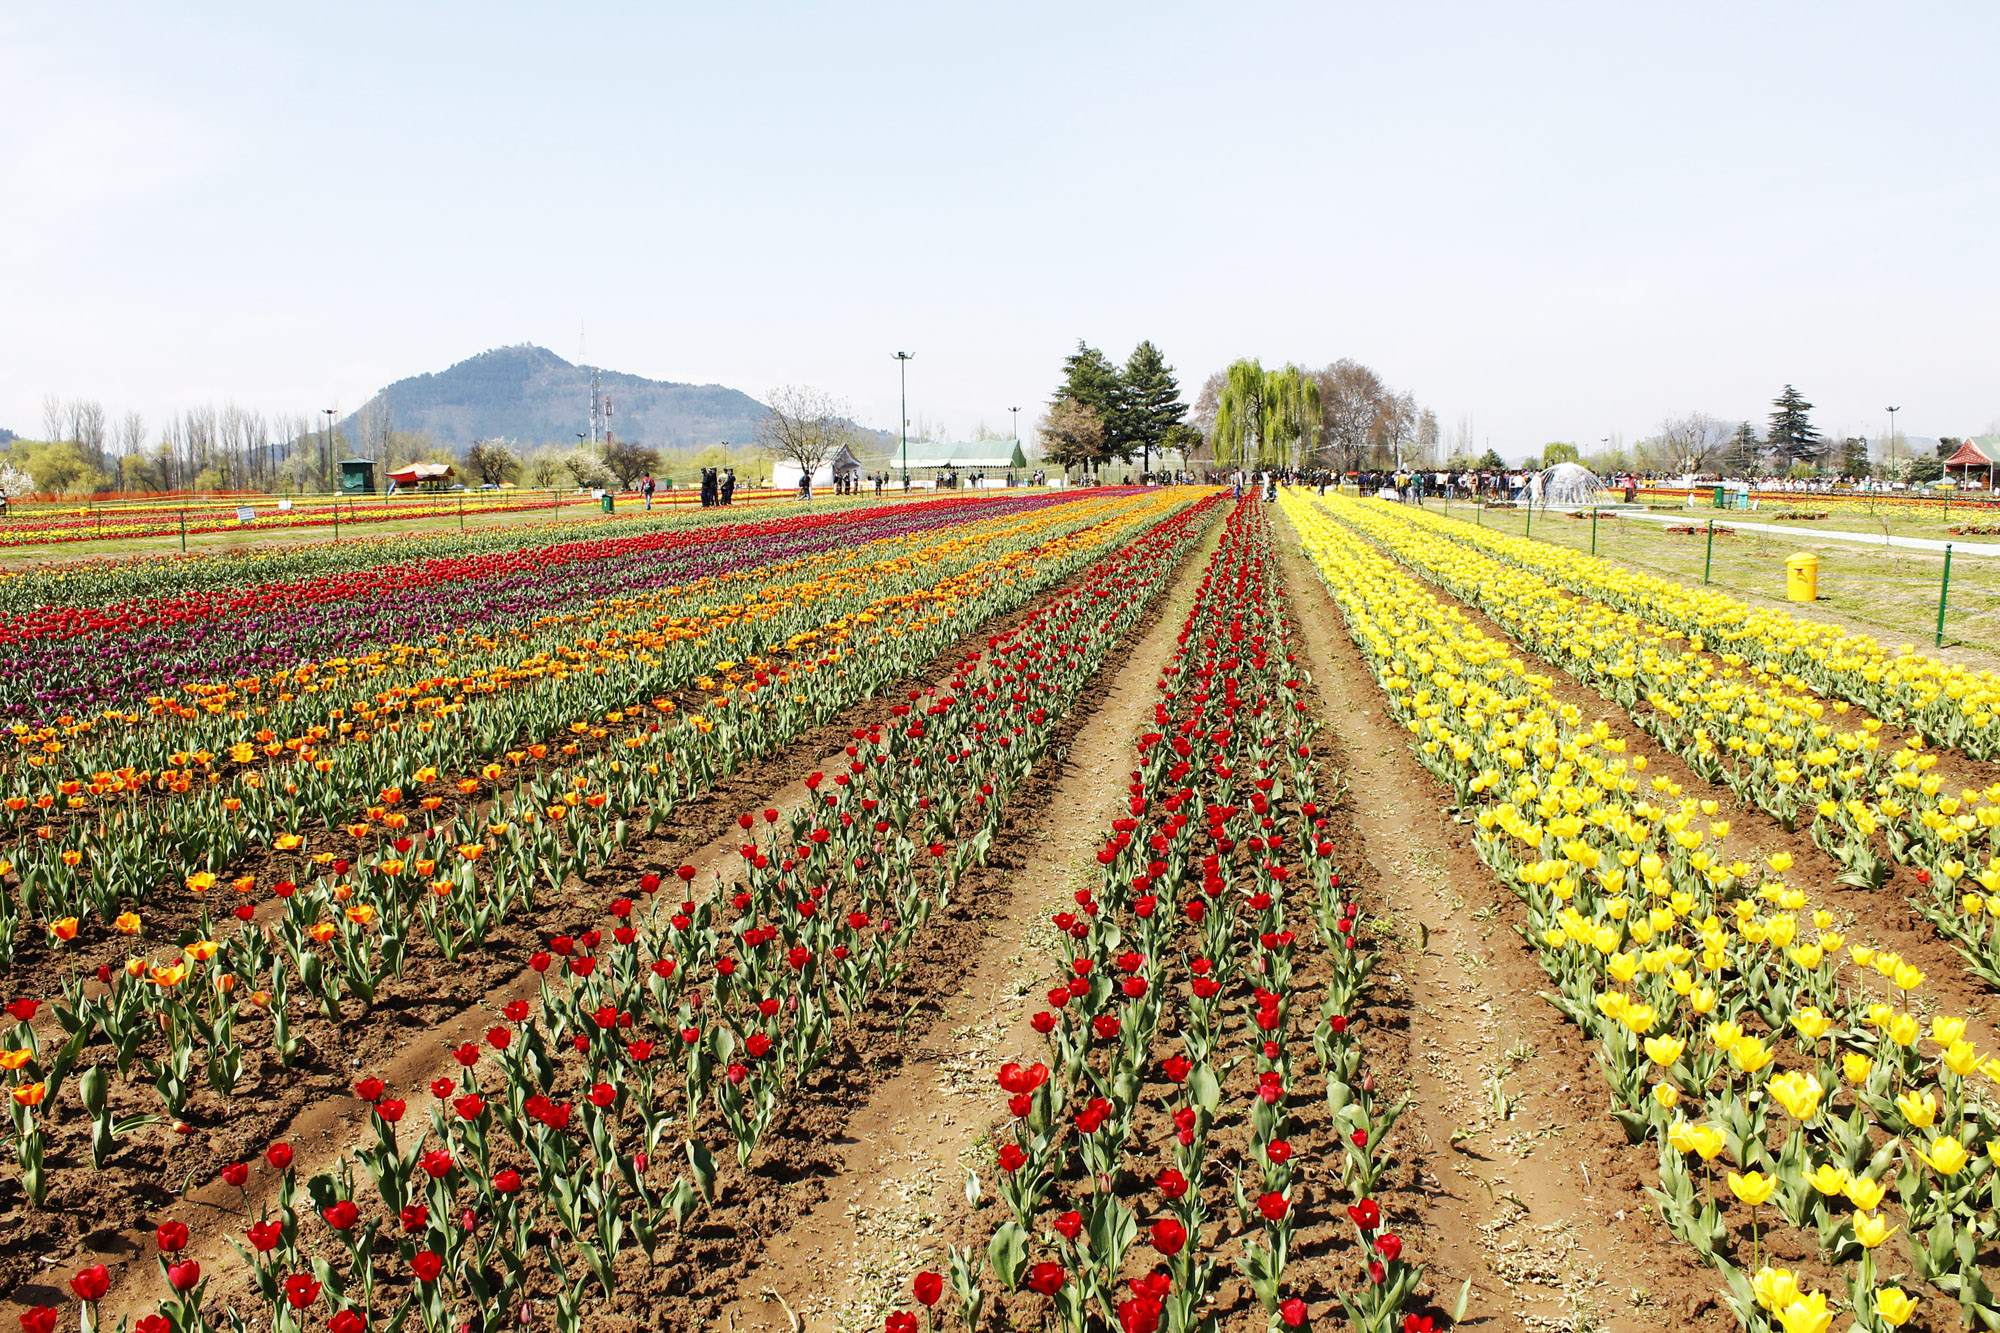 Paradise amid blooms: A glimpse of Tulip Garden in Kashmir – U4UVoice